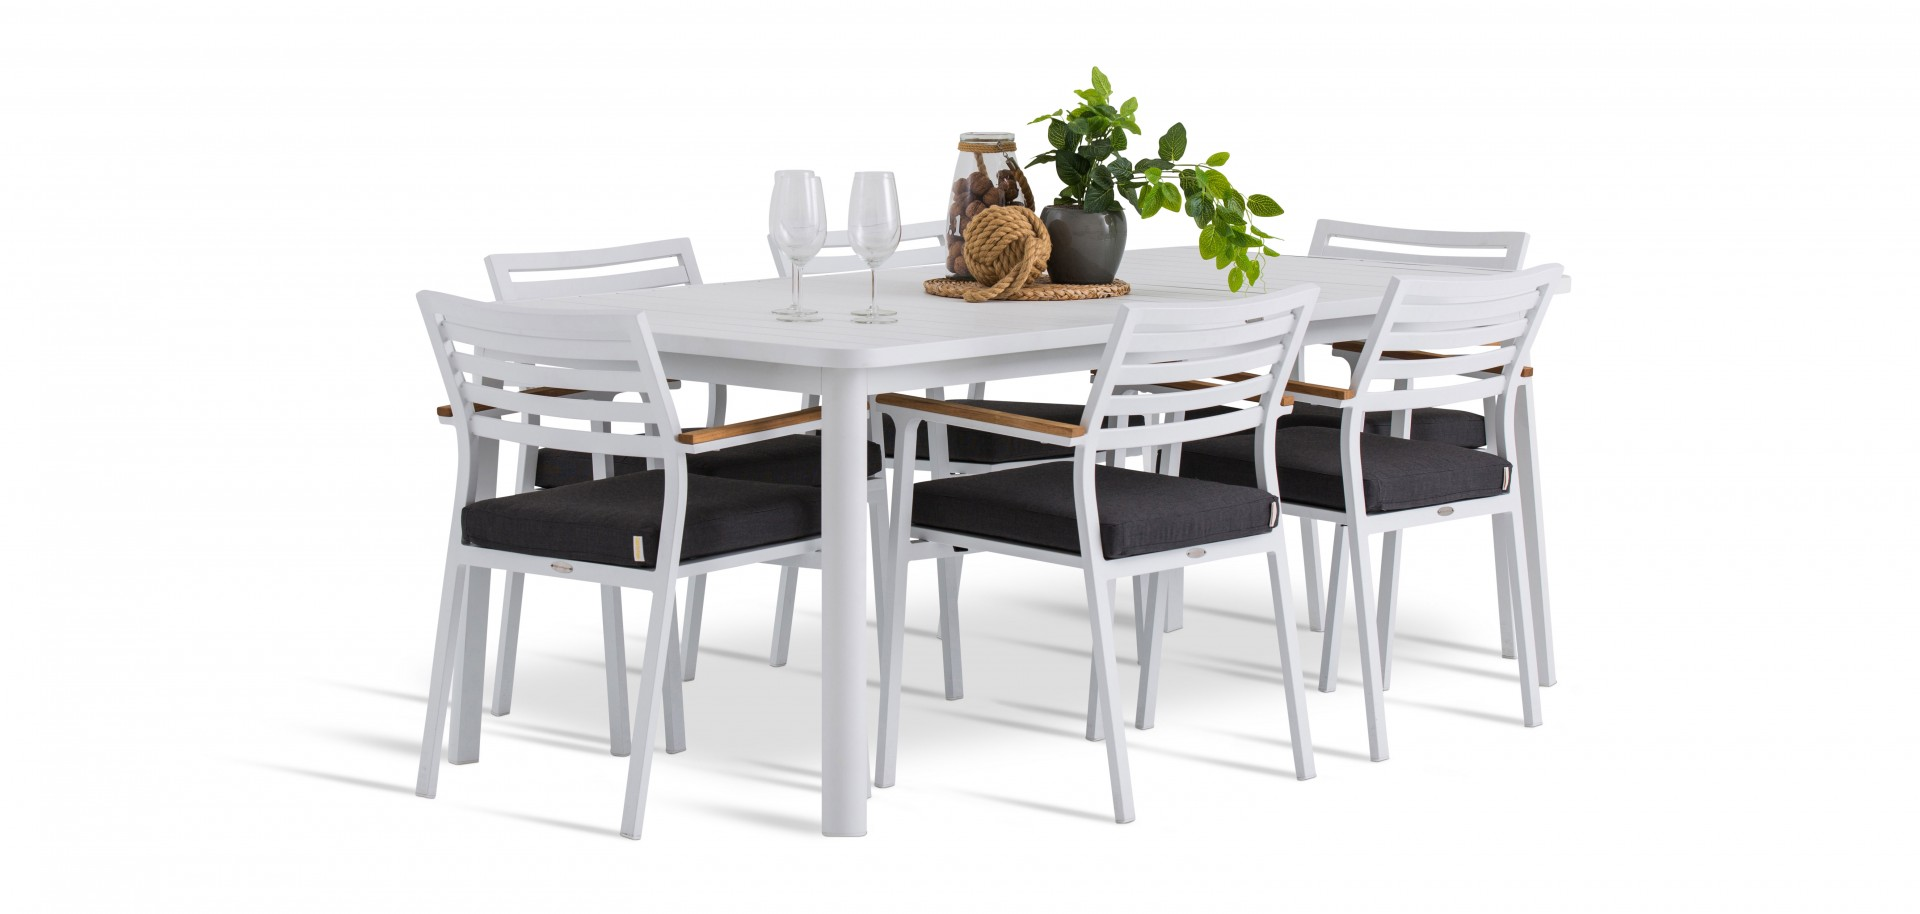 Athens Outdoor Chairs with Table White